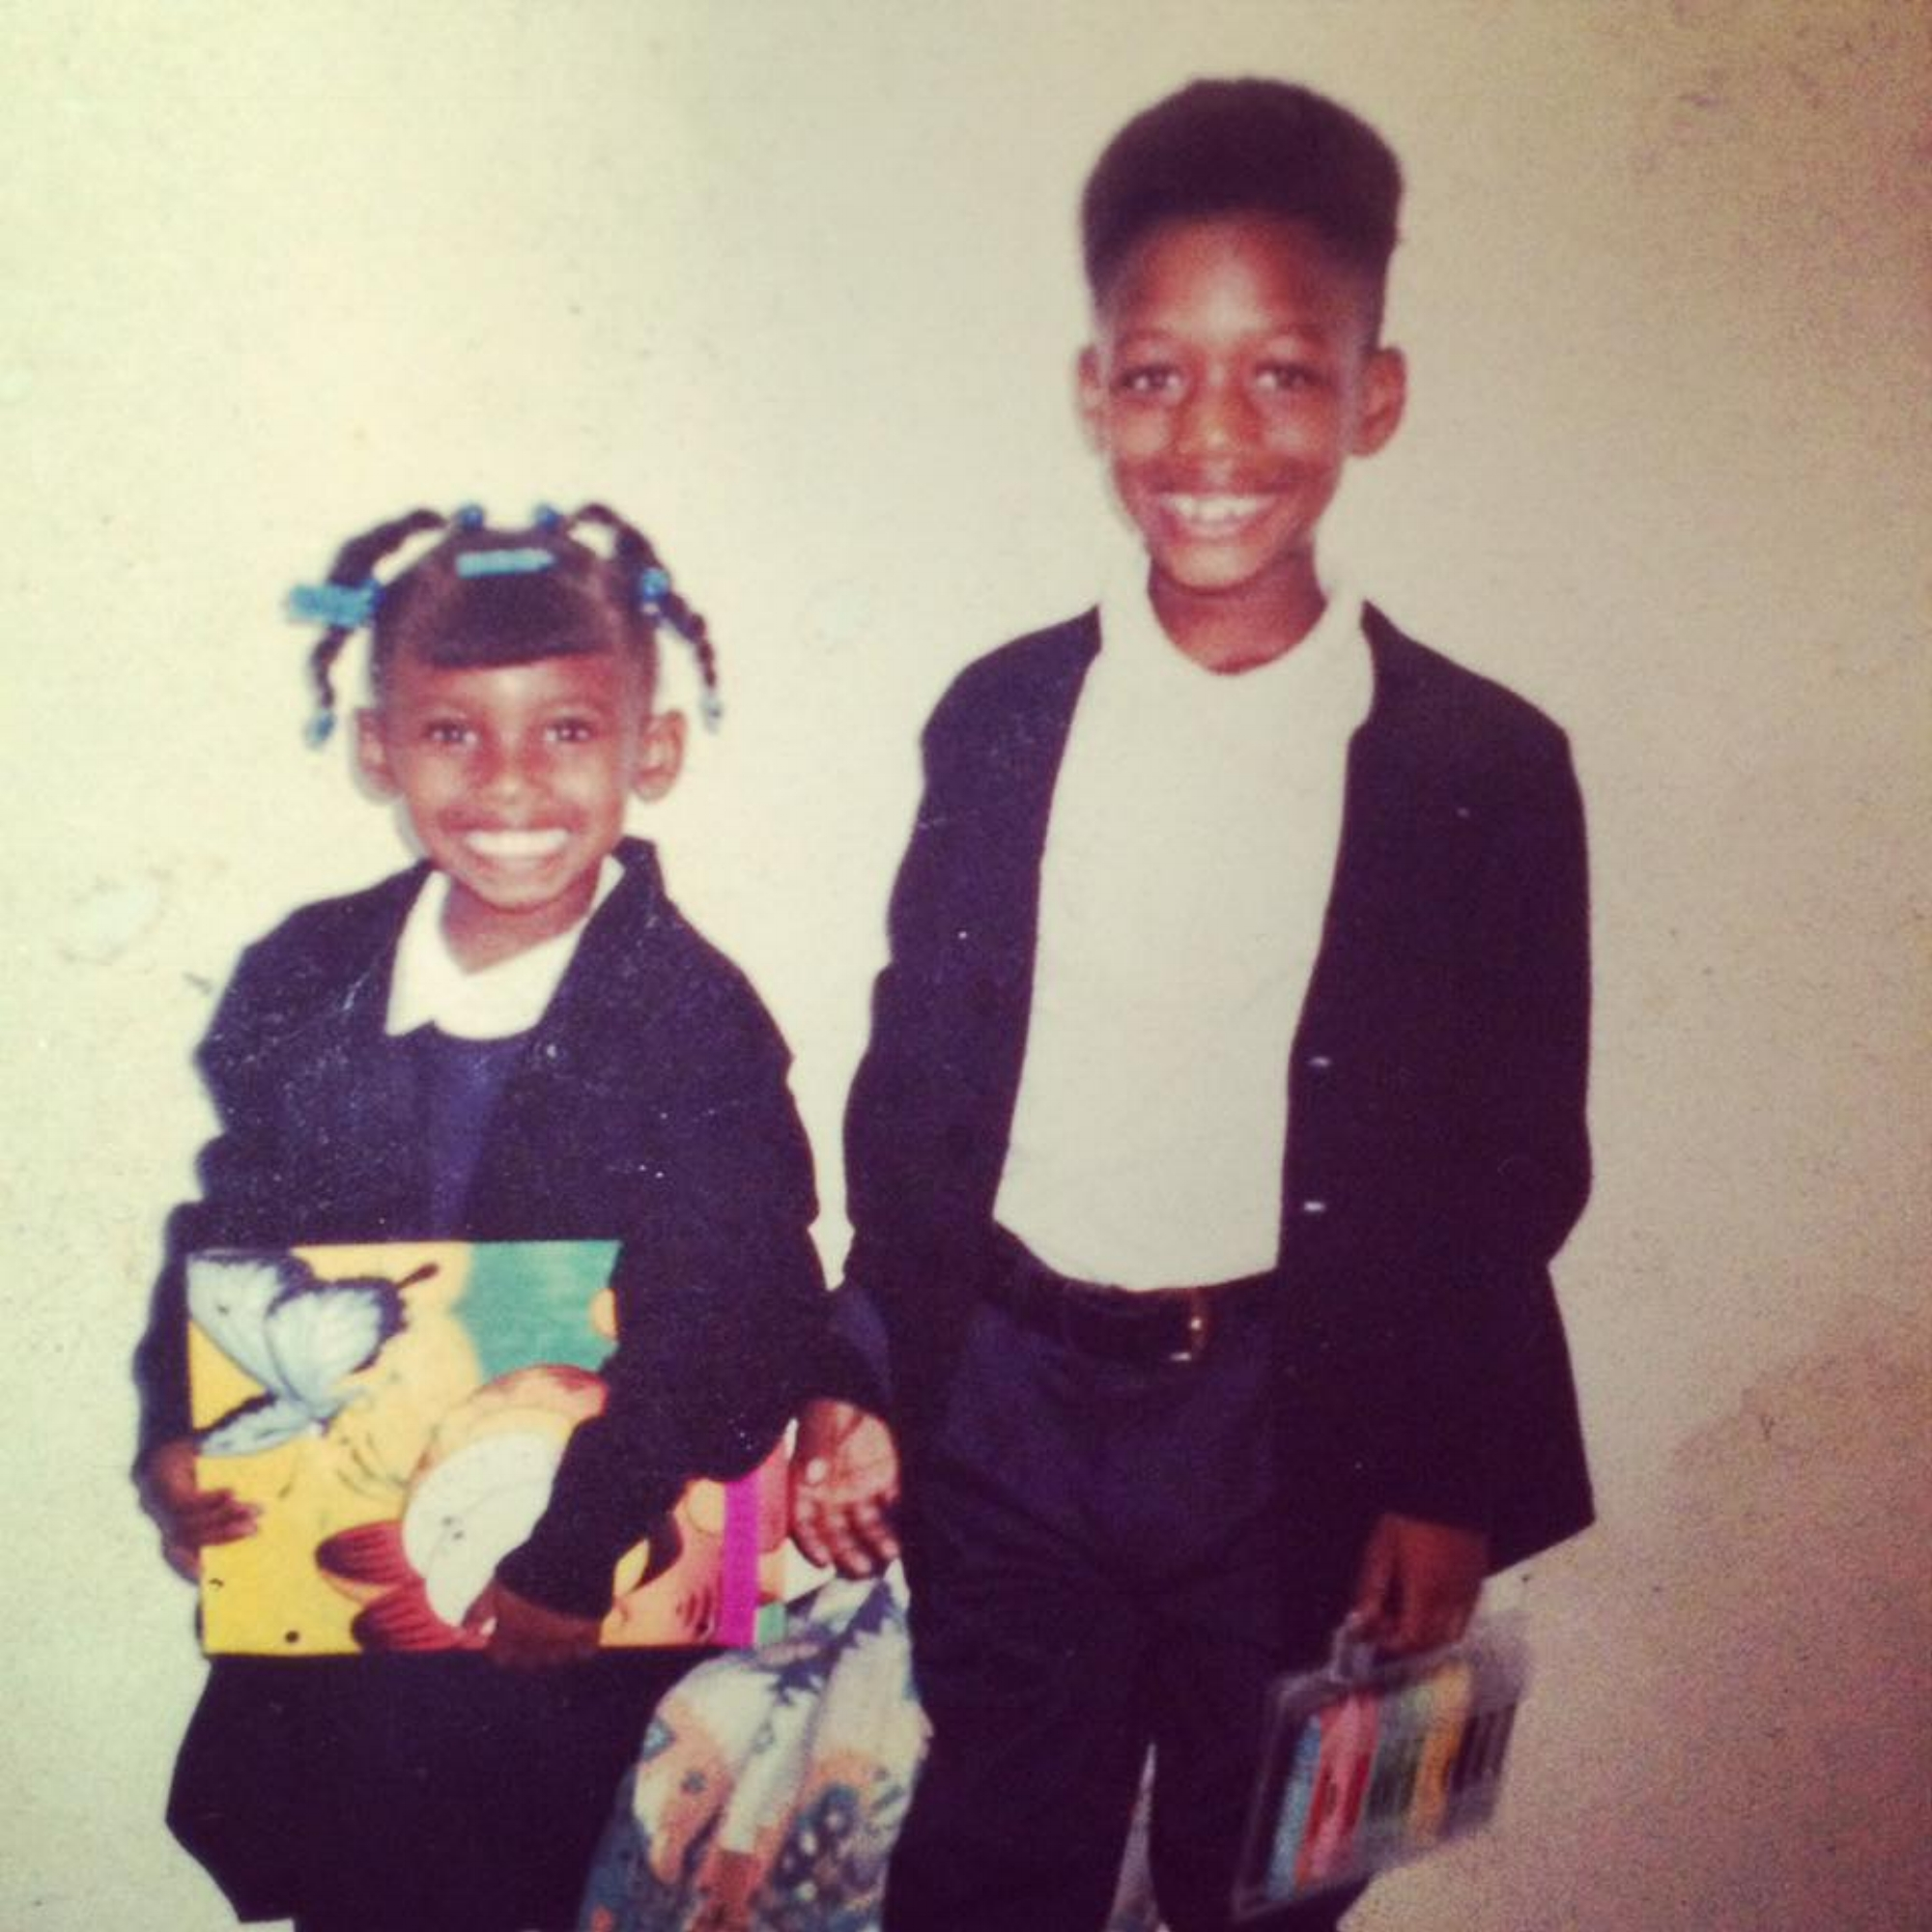 Marquel Jackson (pictured, right) and his sister Shaashia in the early 1990s. Courtesy of Marquel Jackson.